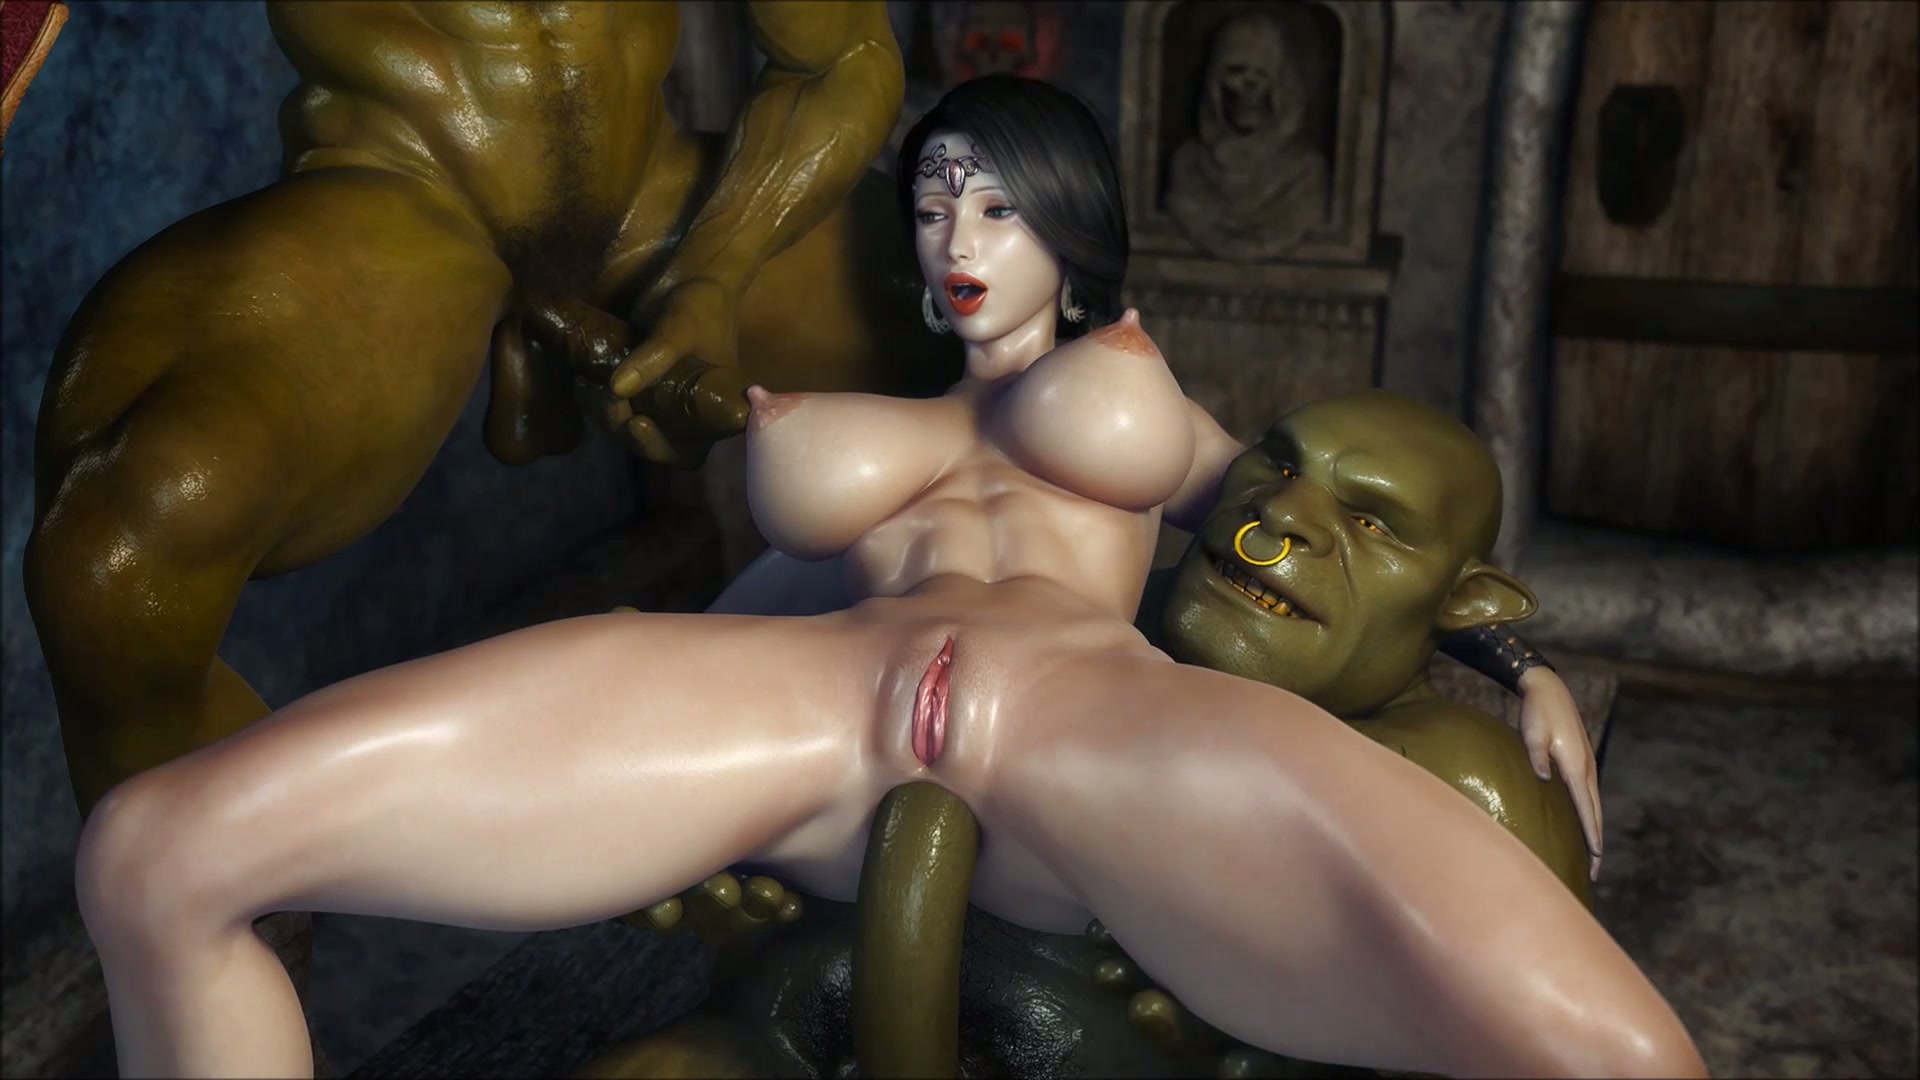 Henti pprincess fucked by monster hentai vids